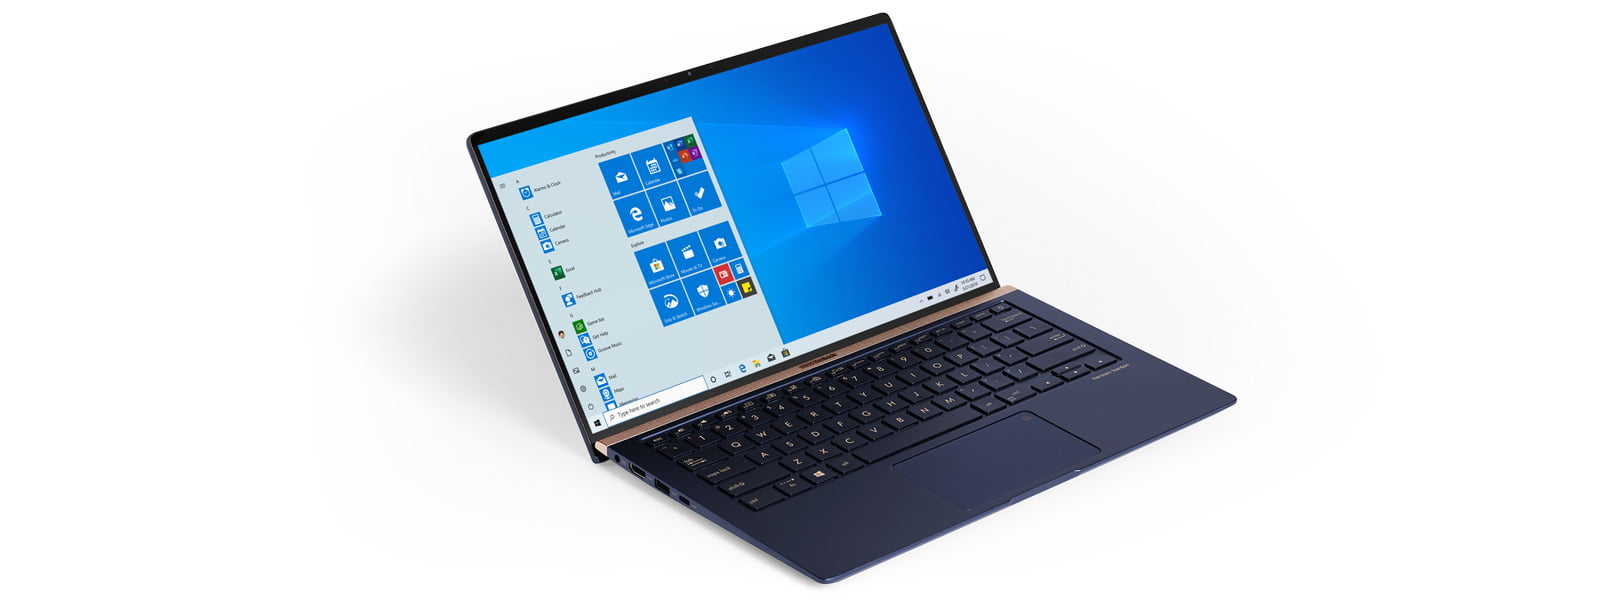 How to disable automatic updates in Windows 10?